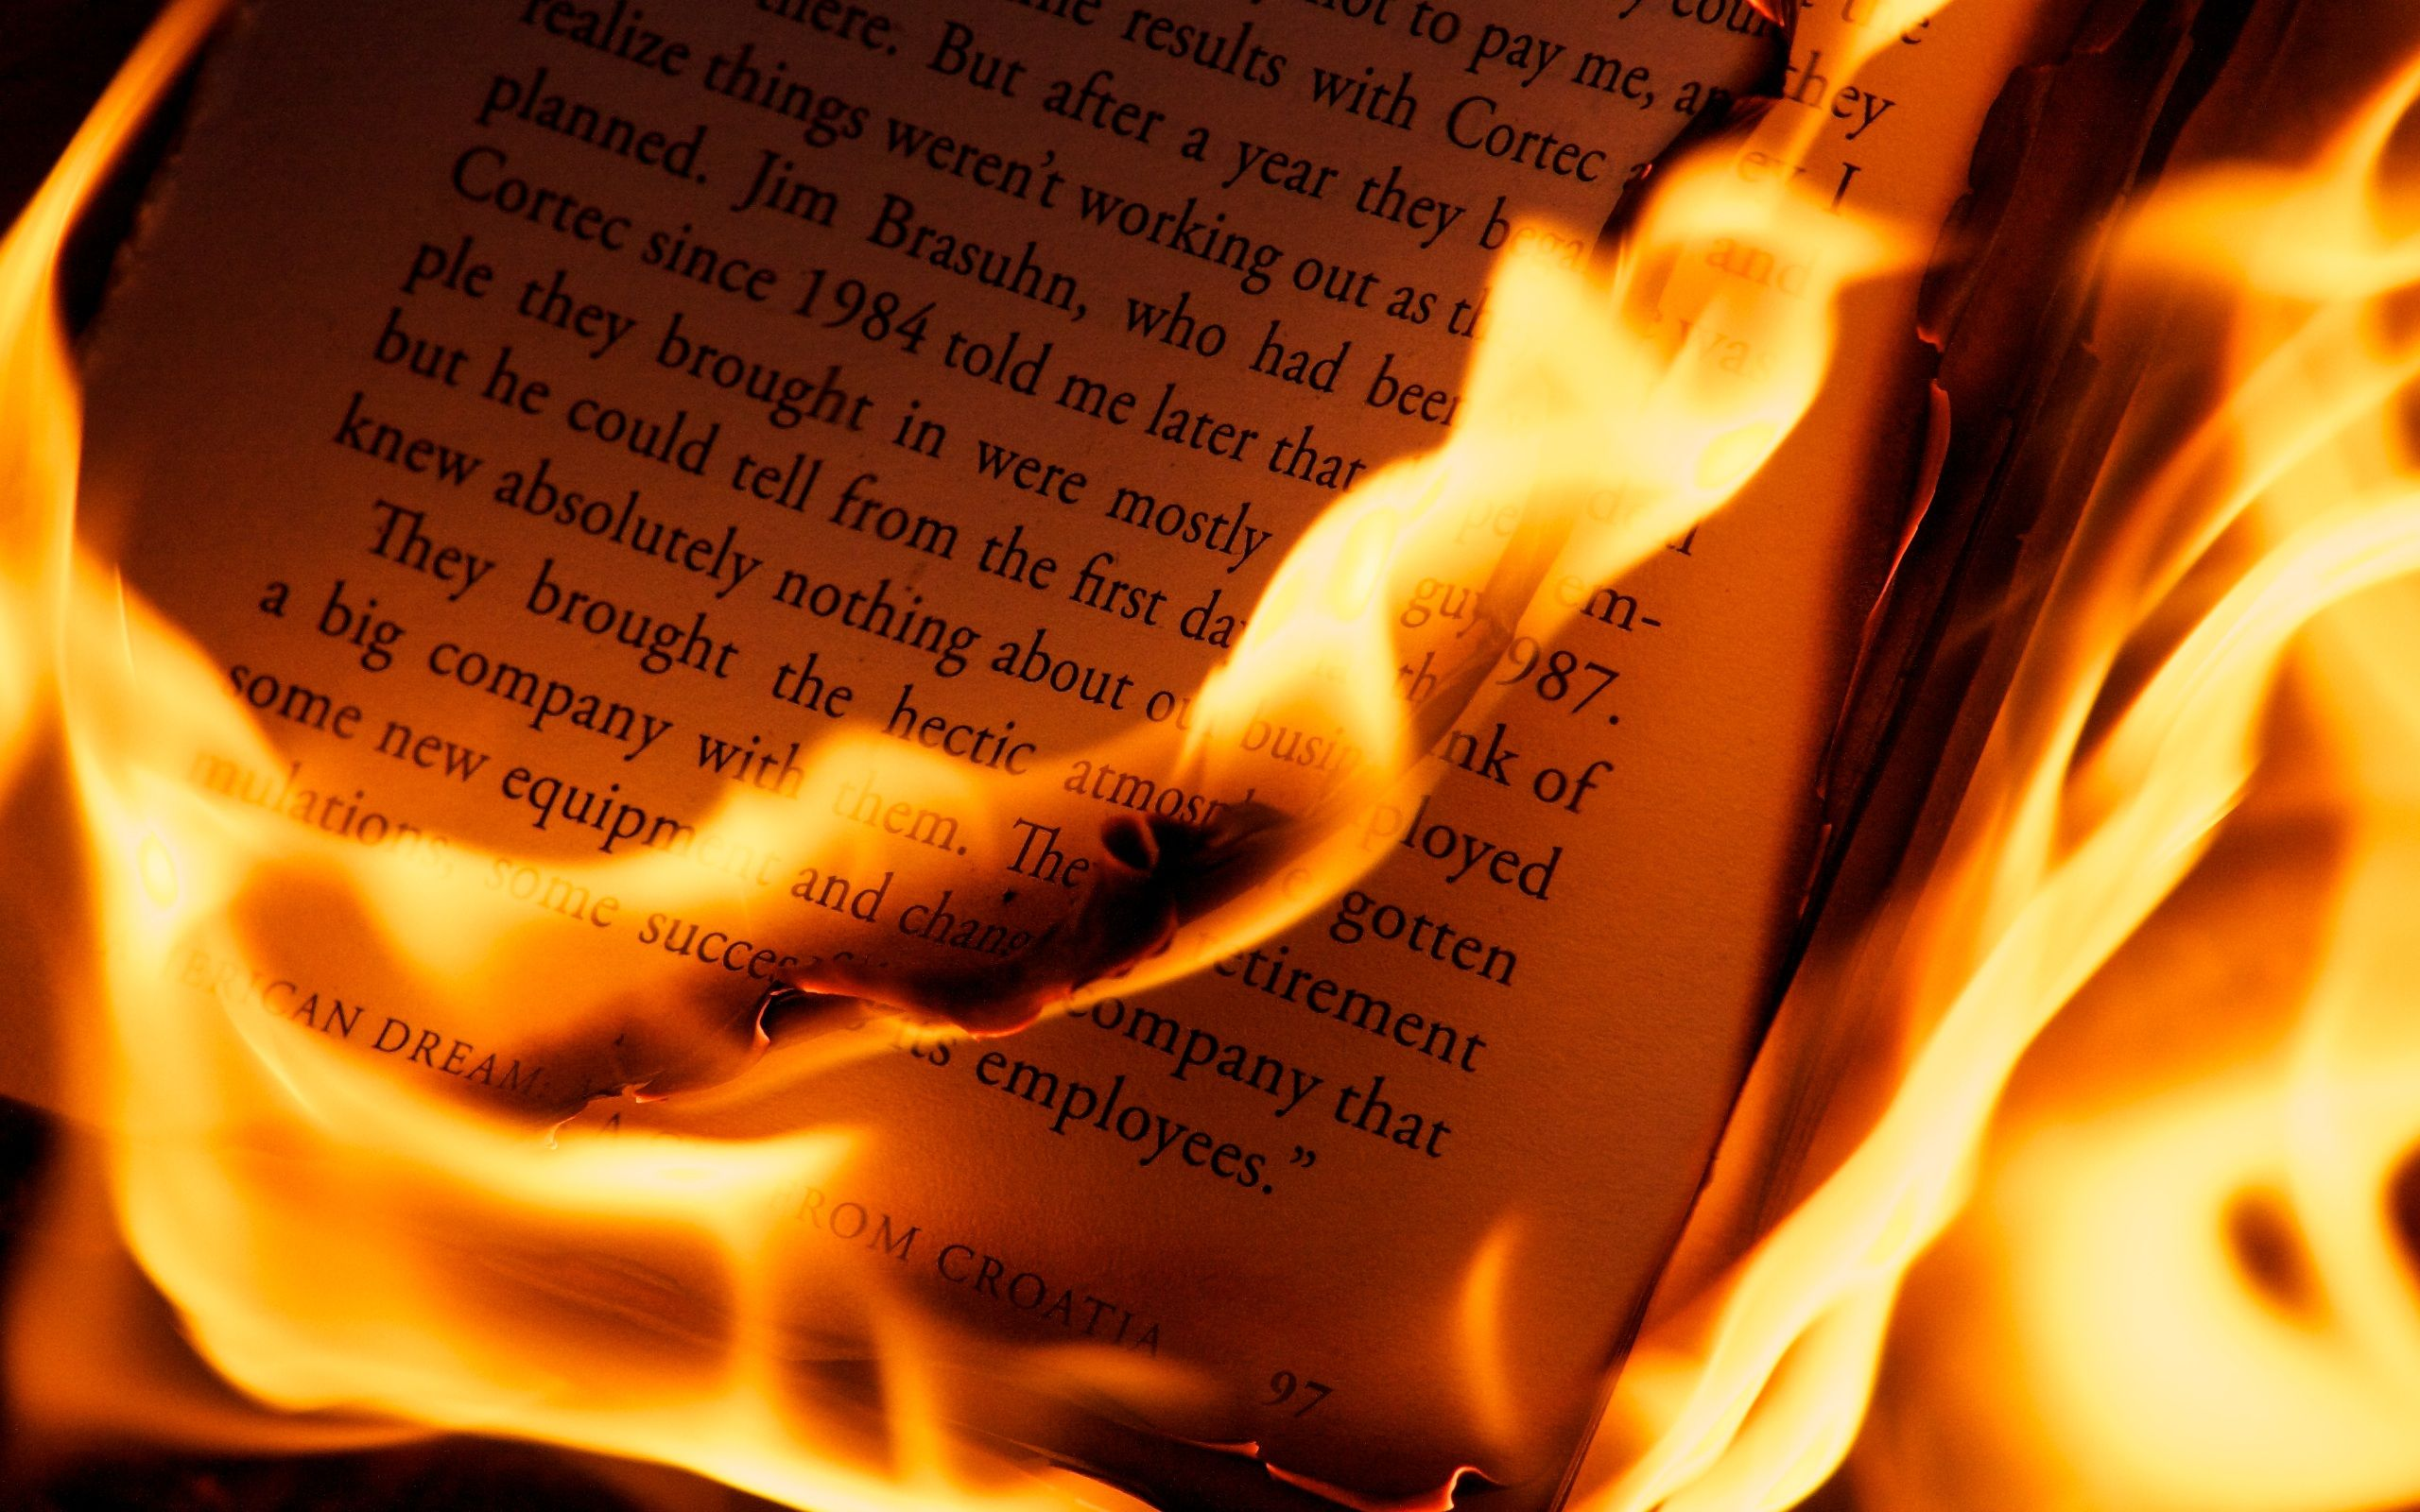 Hd Wallpapers Desktop High Definition Wallpapers Book Wallpaper Fire Photography Letter Photography